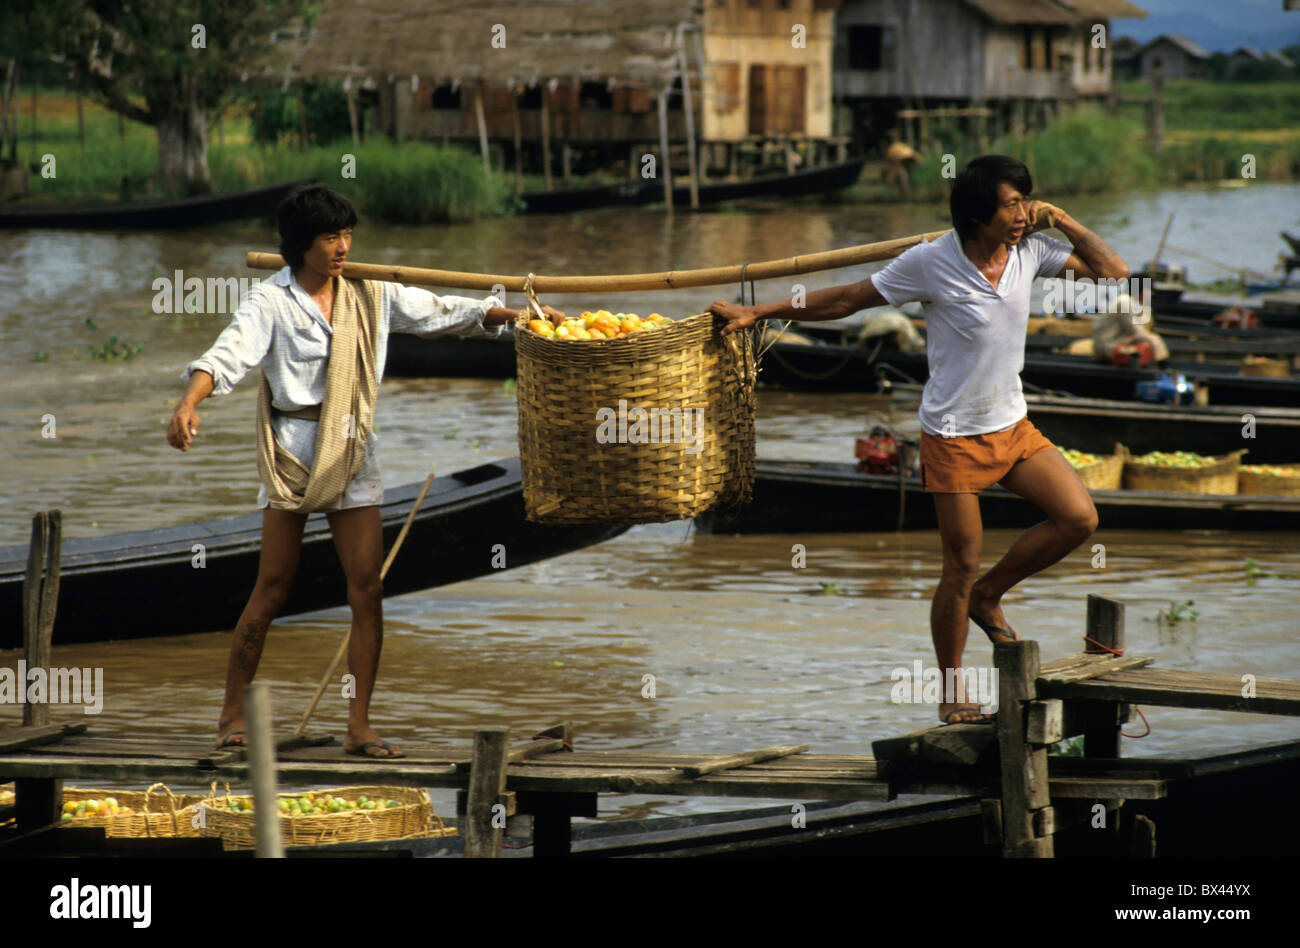 Two men disembarking from a boat carrying baskets full of tomatoes on Inle Lake, Nyaung Shwe, Burma. - Stock Image